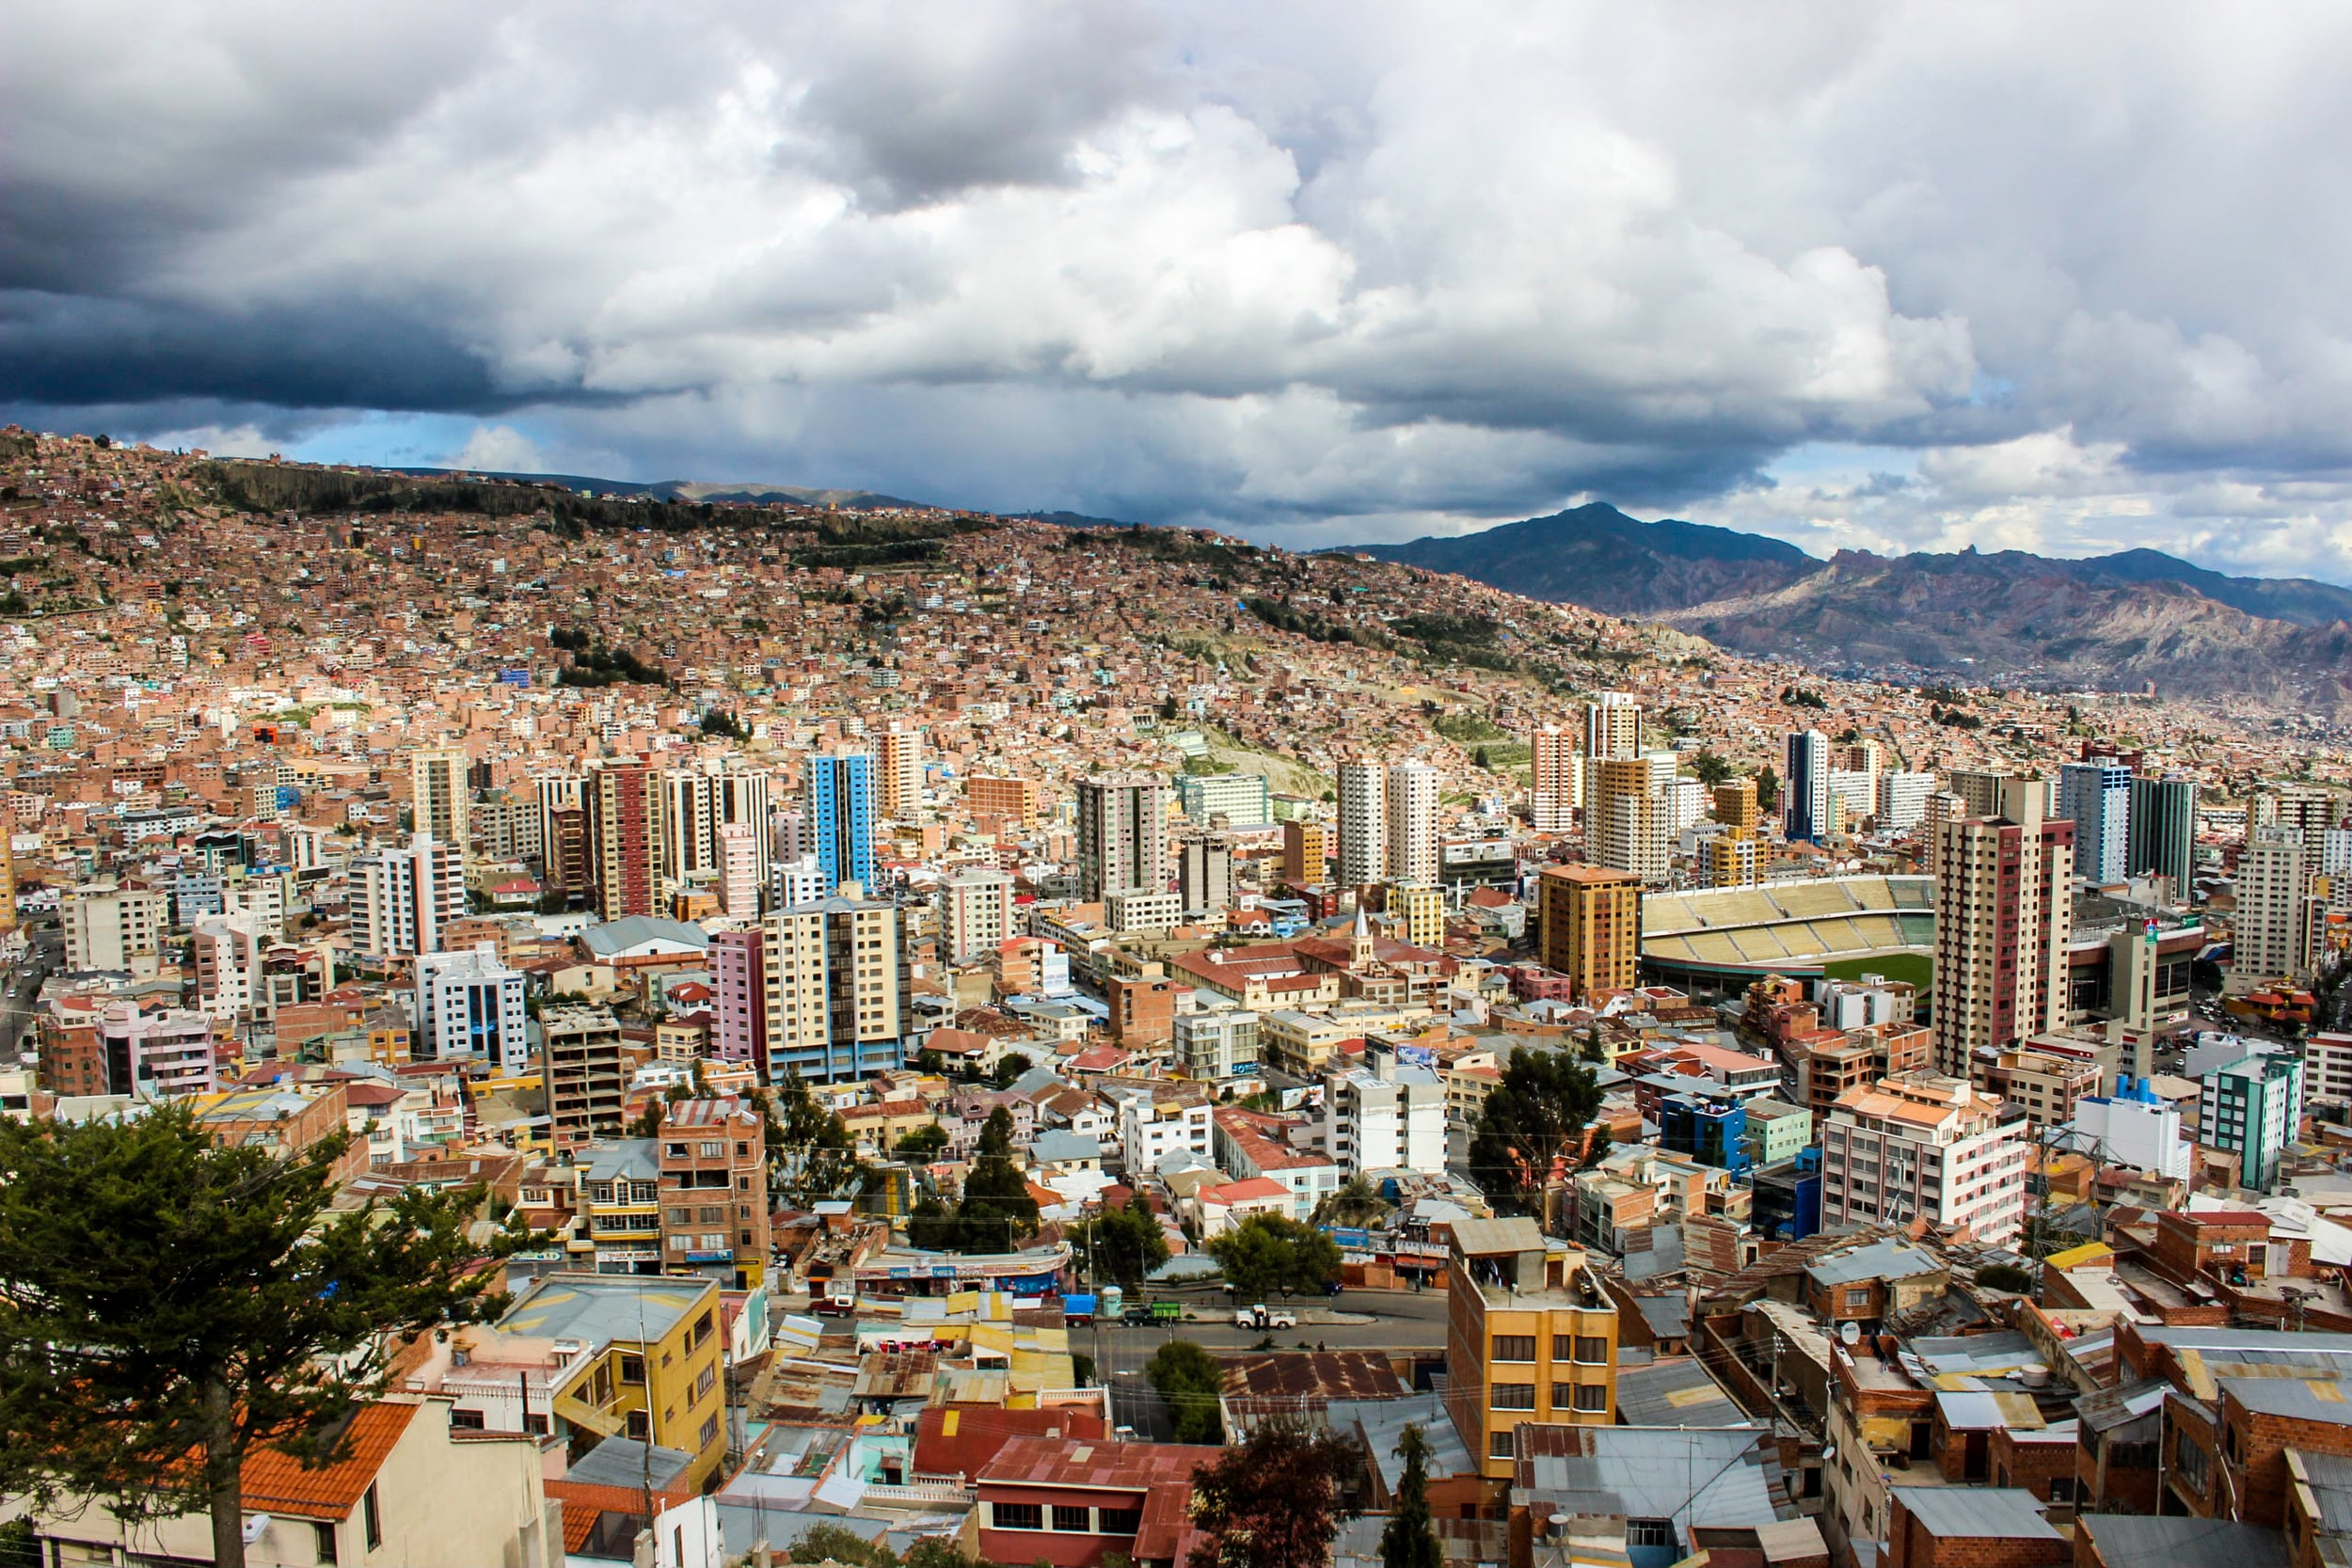 At 3650 metres above sea level, La Paz, Bolivia, is the worlds highest administrative capital (technically, the capital of Bolivia is Sucre).   To deal with the altitude, locals and tourists chew or make tea from coca leaves. The same plant used to manufacture cocaine. In most countries outside of South America, possession of coca leaves are illegal.   However, the plant is prominent in traditional Andean cultures. Coca leaves do not give the high people experience with cocaine, and it used for medicinal and nutritional purposes. Bolivian President Evo Morales is an outspoken advocate for the global legalisation of the plant.   Fun-fact: the original recipe of Coca Cola contains coca leaves.